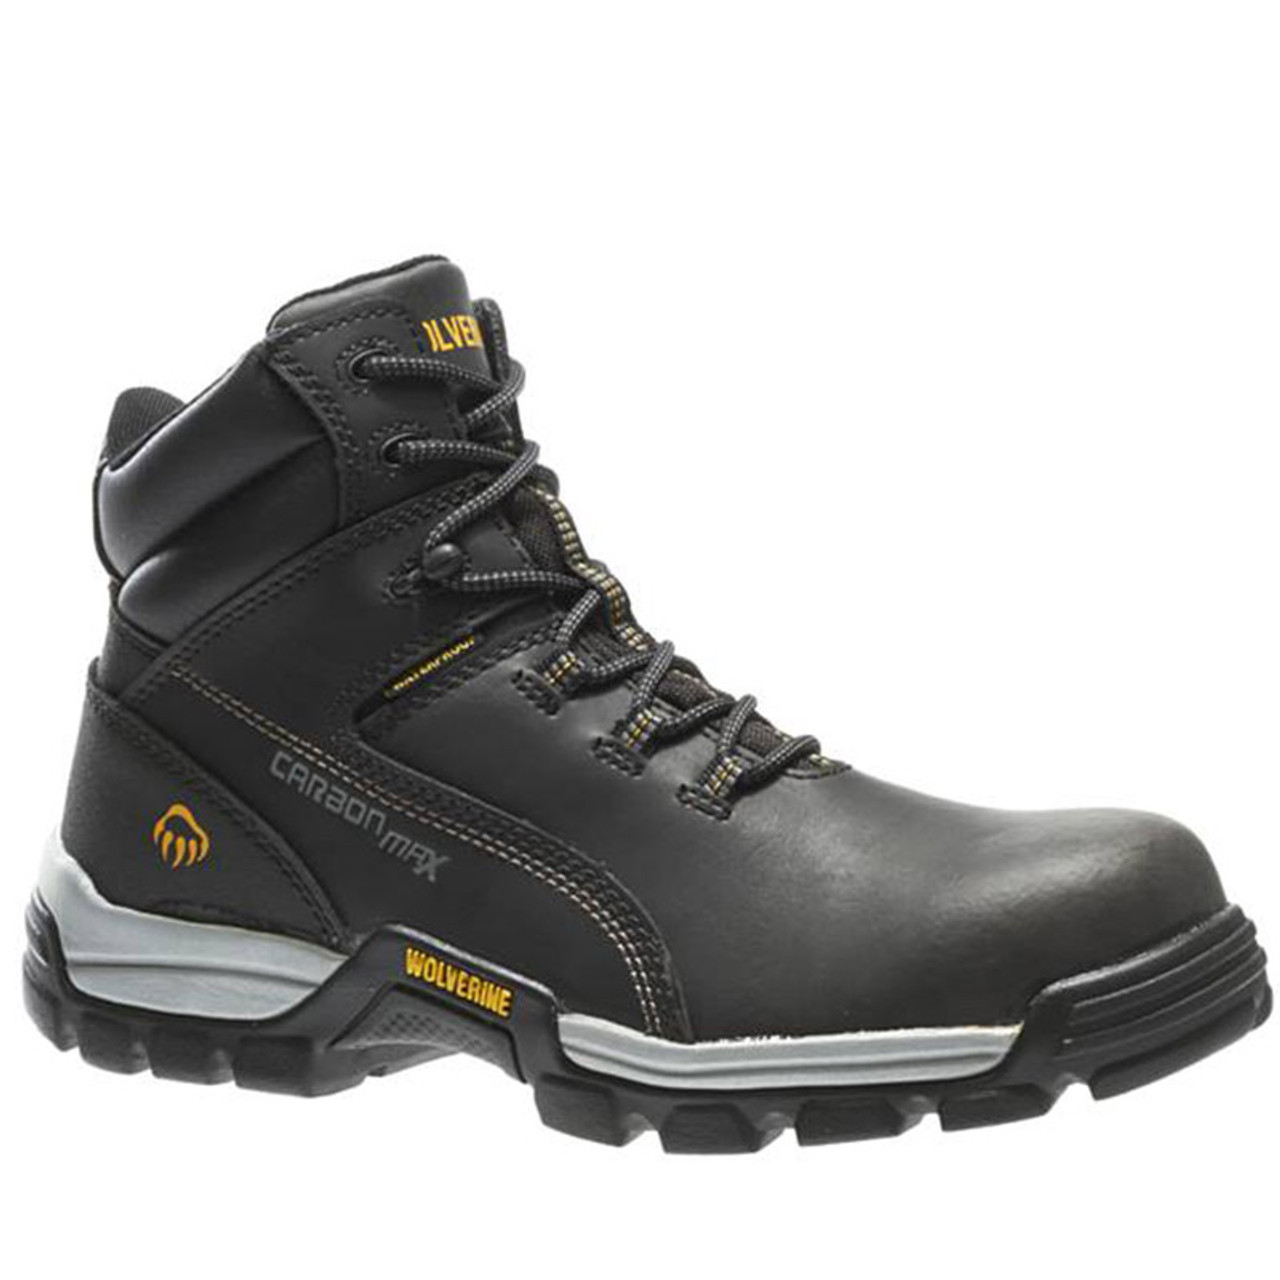 47d13844a8f Wolverine W10304 TARMAC CarbonMAX Composite Toe Non-Insulated Black Work  Boots